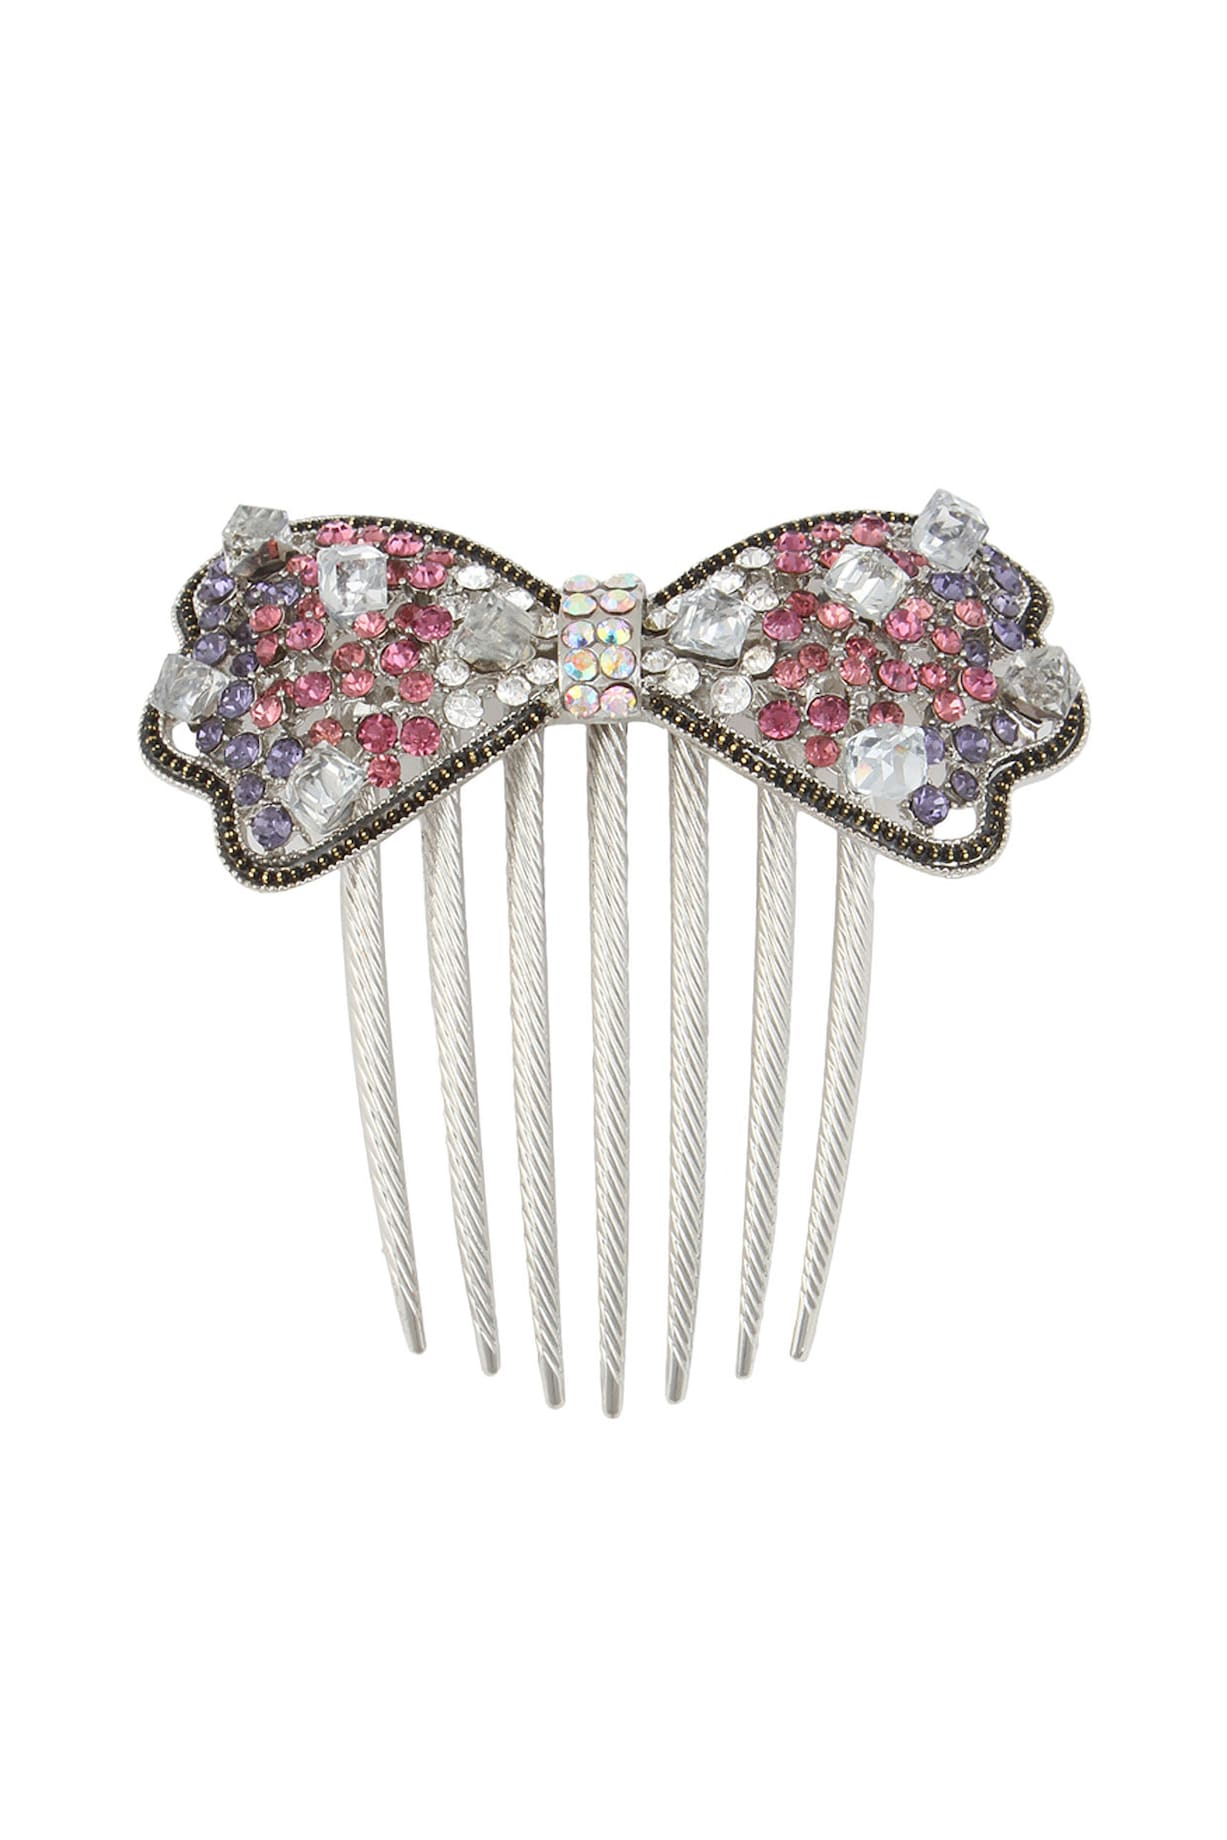 Bansri Hair Accessories